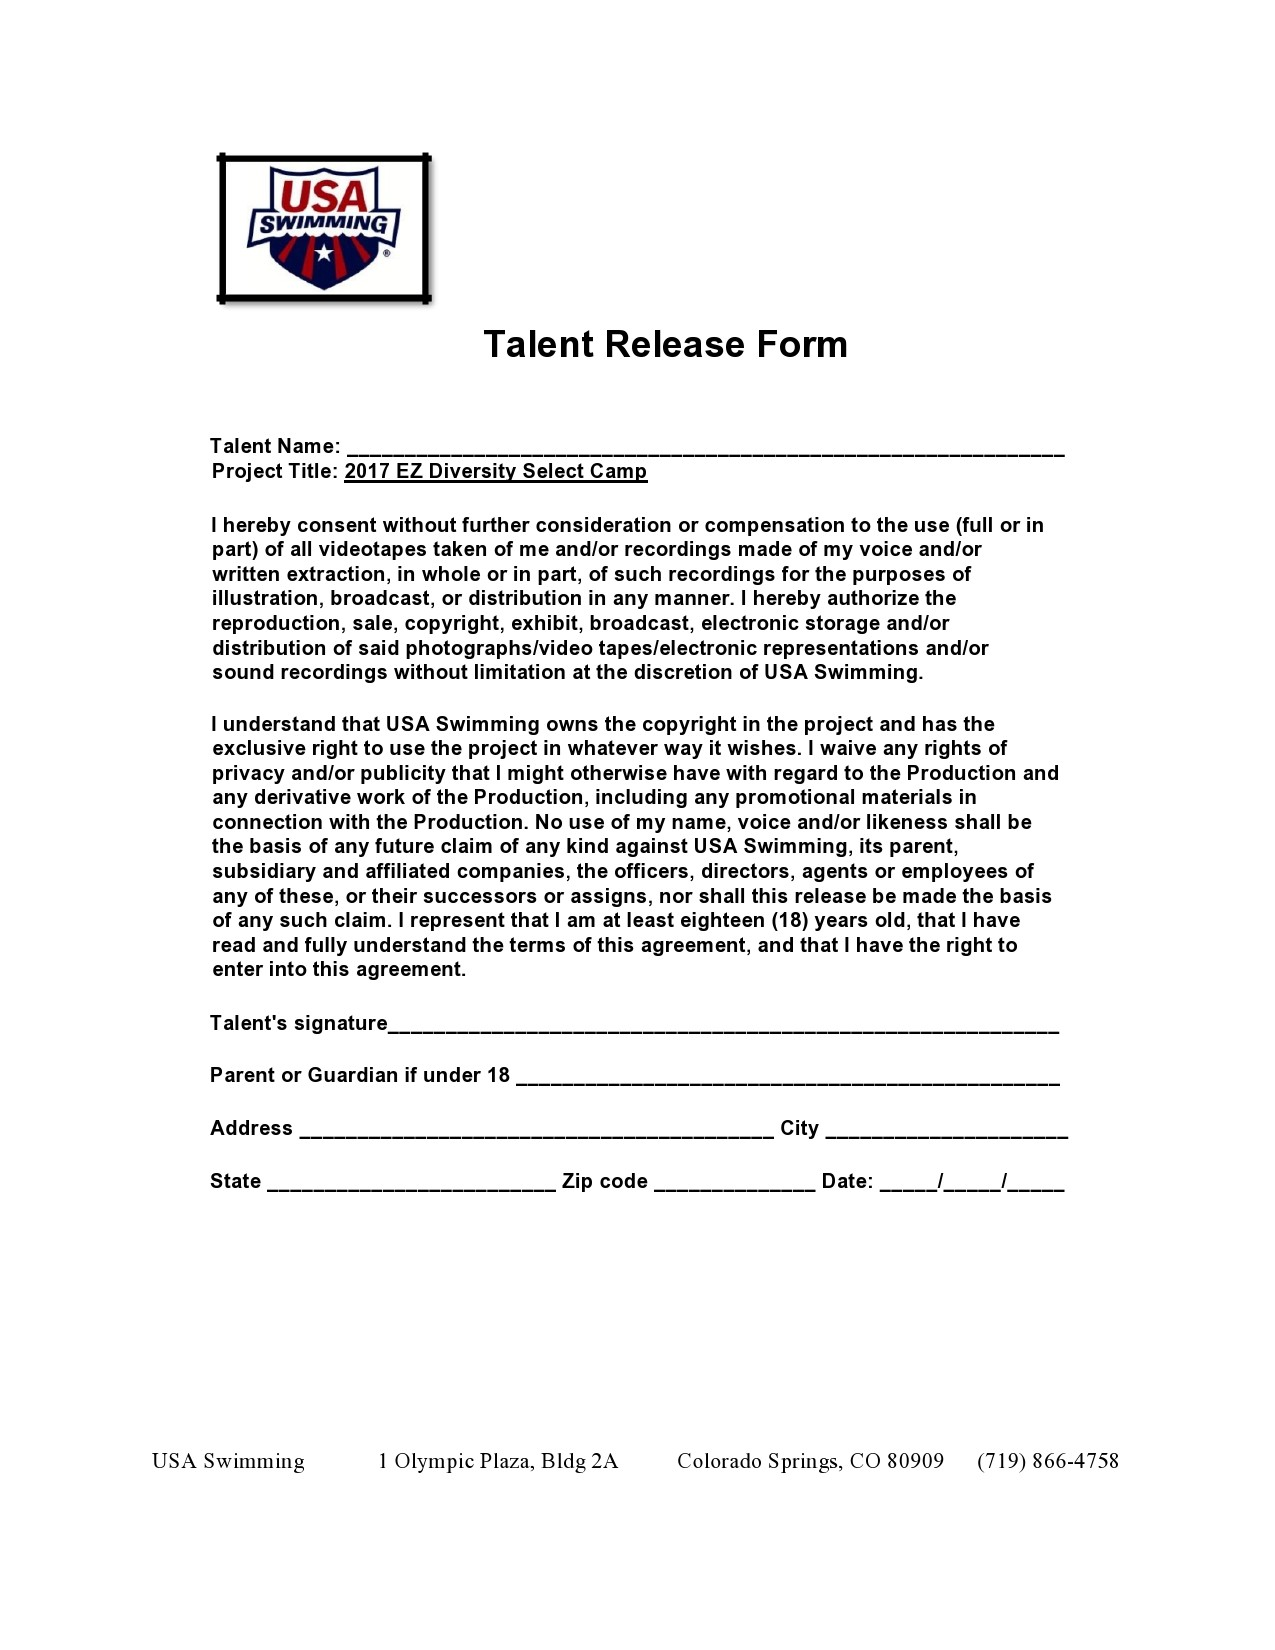 Free talent release form 44